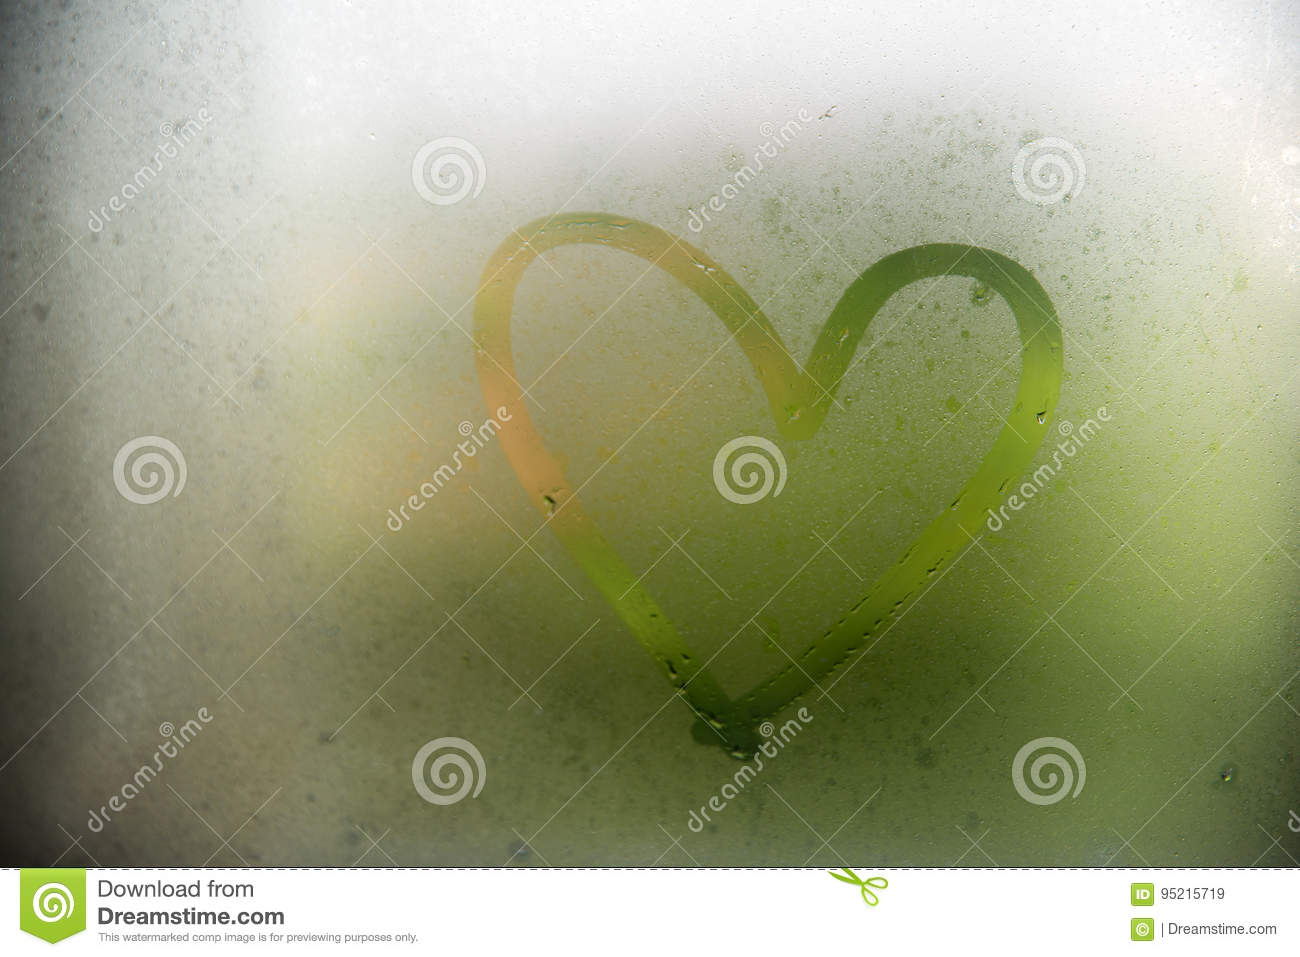 A heart painted on a misted window.Heart on misted glass. Heart on a window background